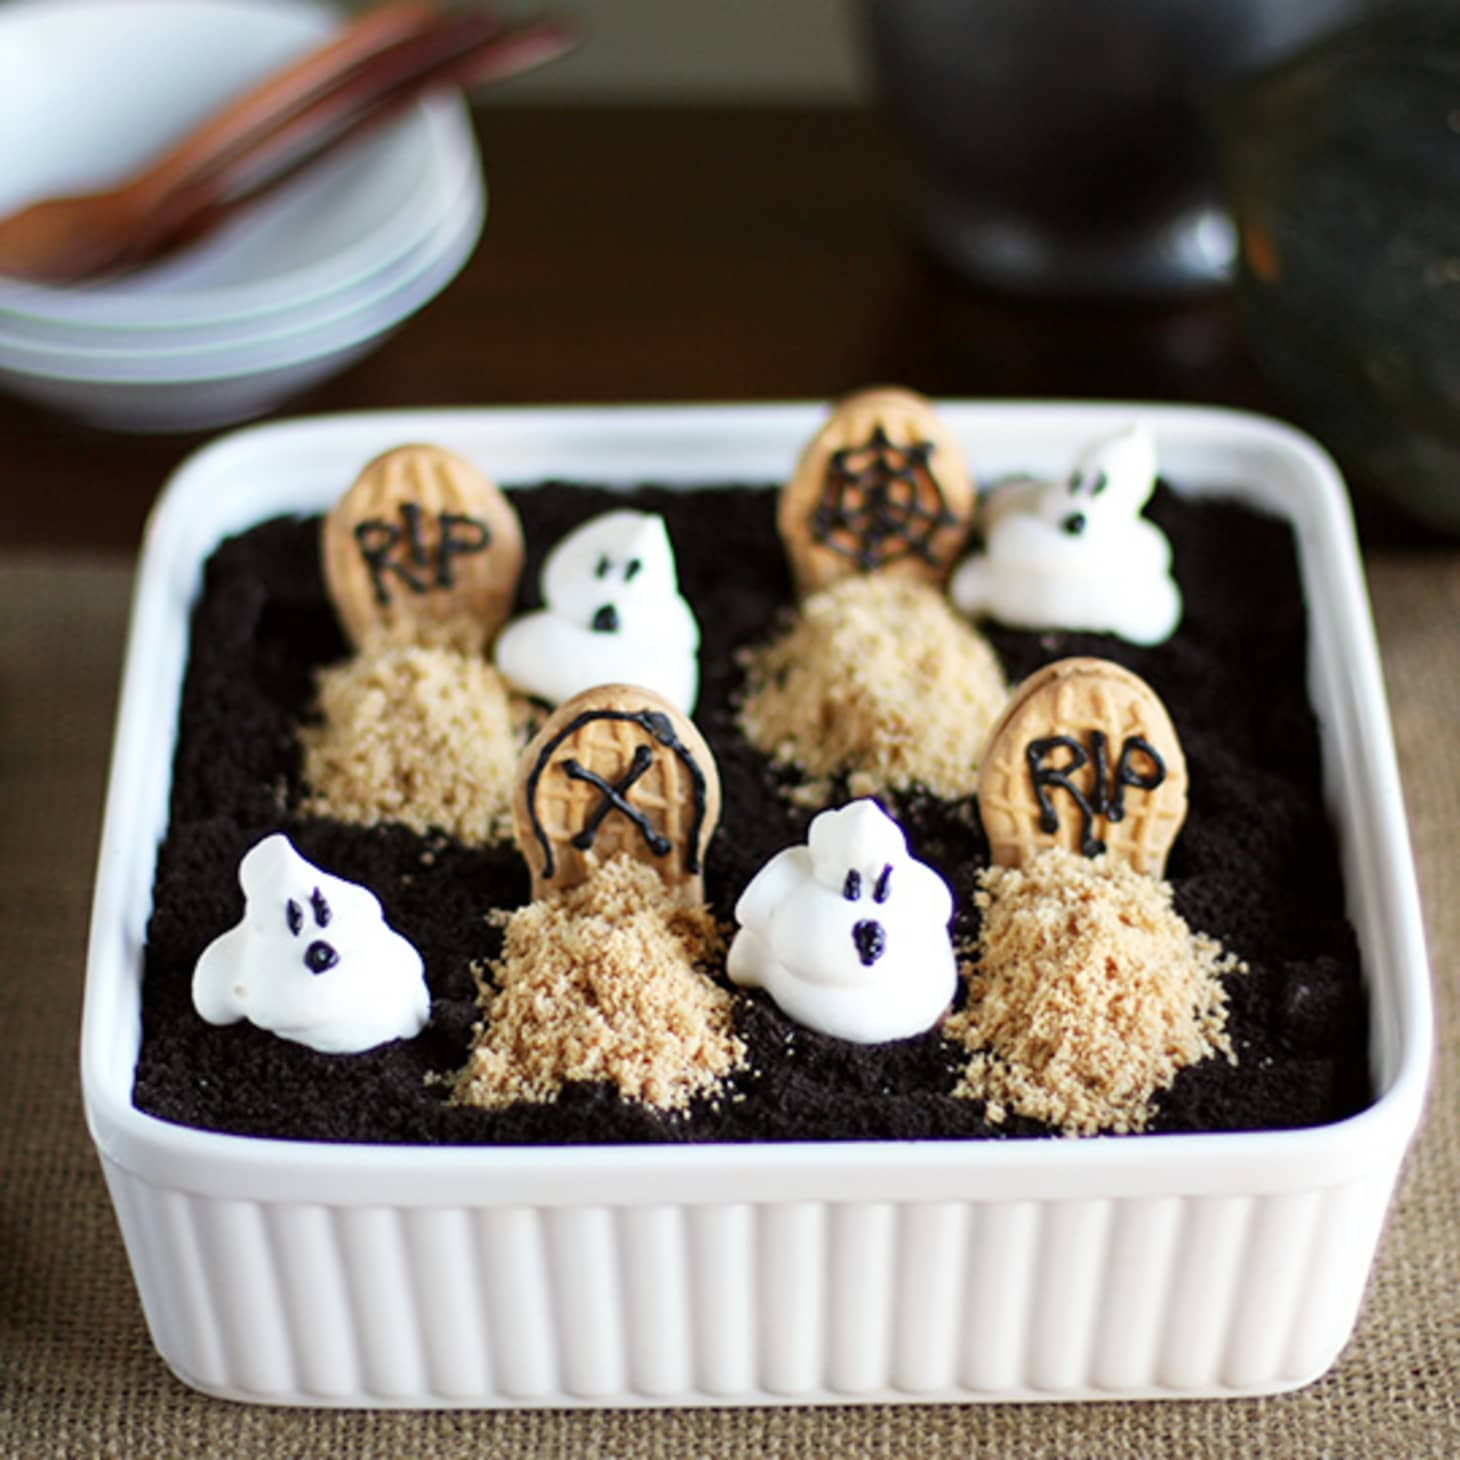 17 Easy Halloween Treats To Make This Year Kitchn